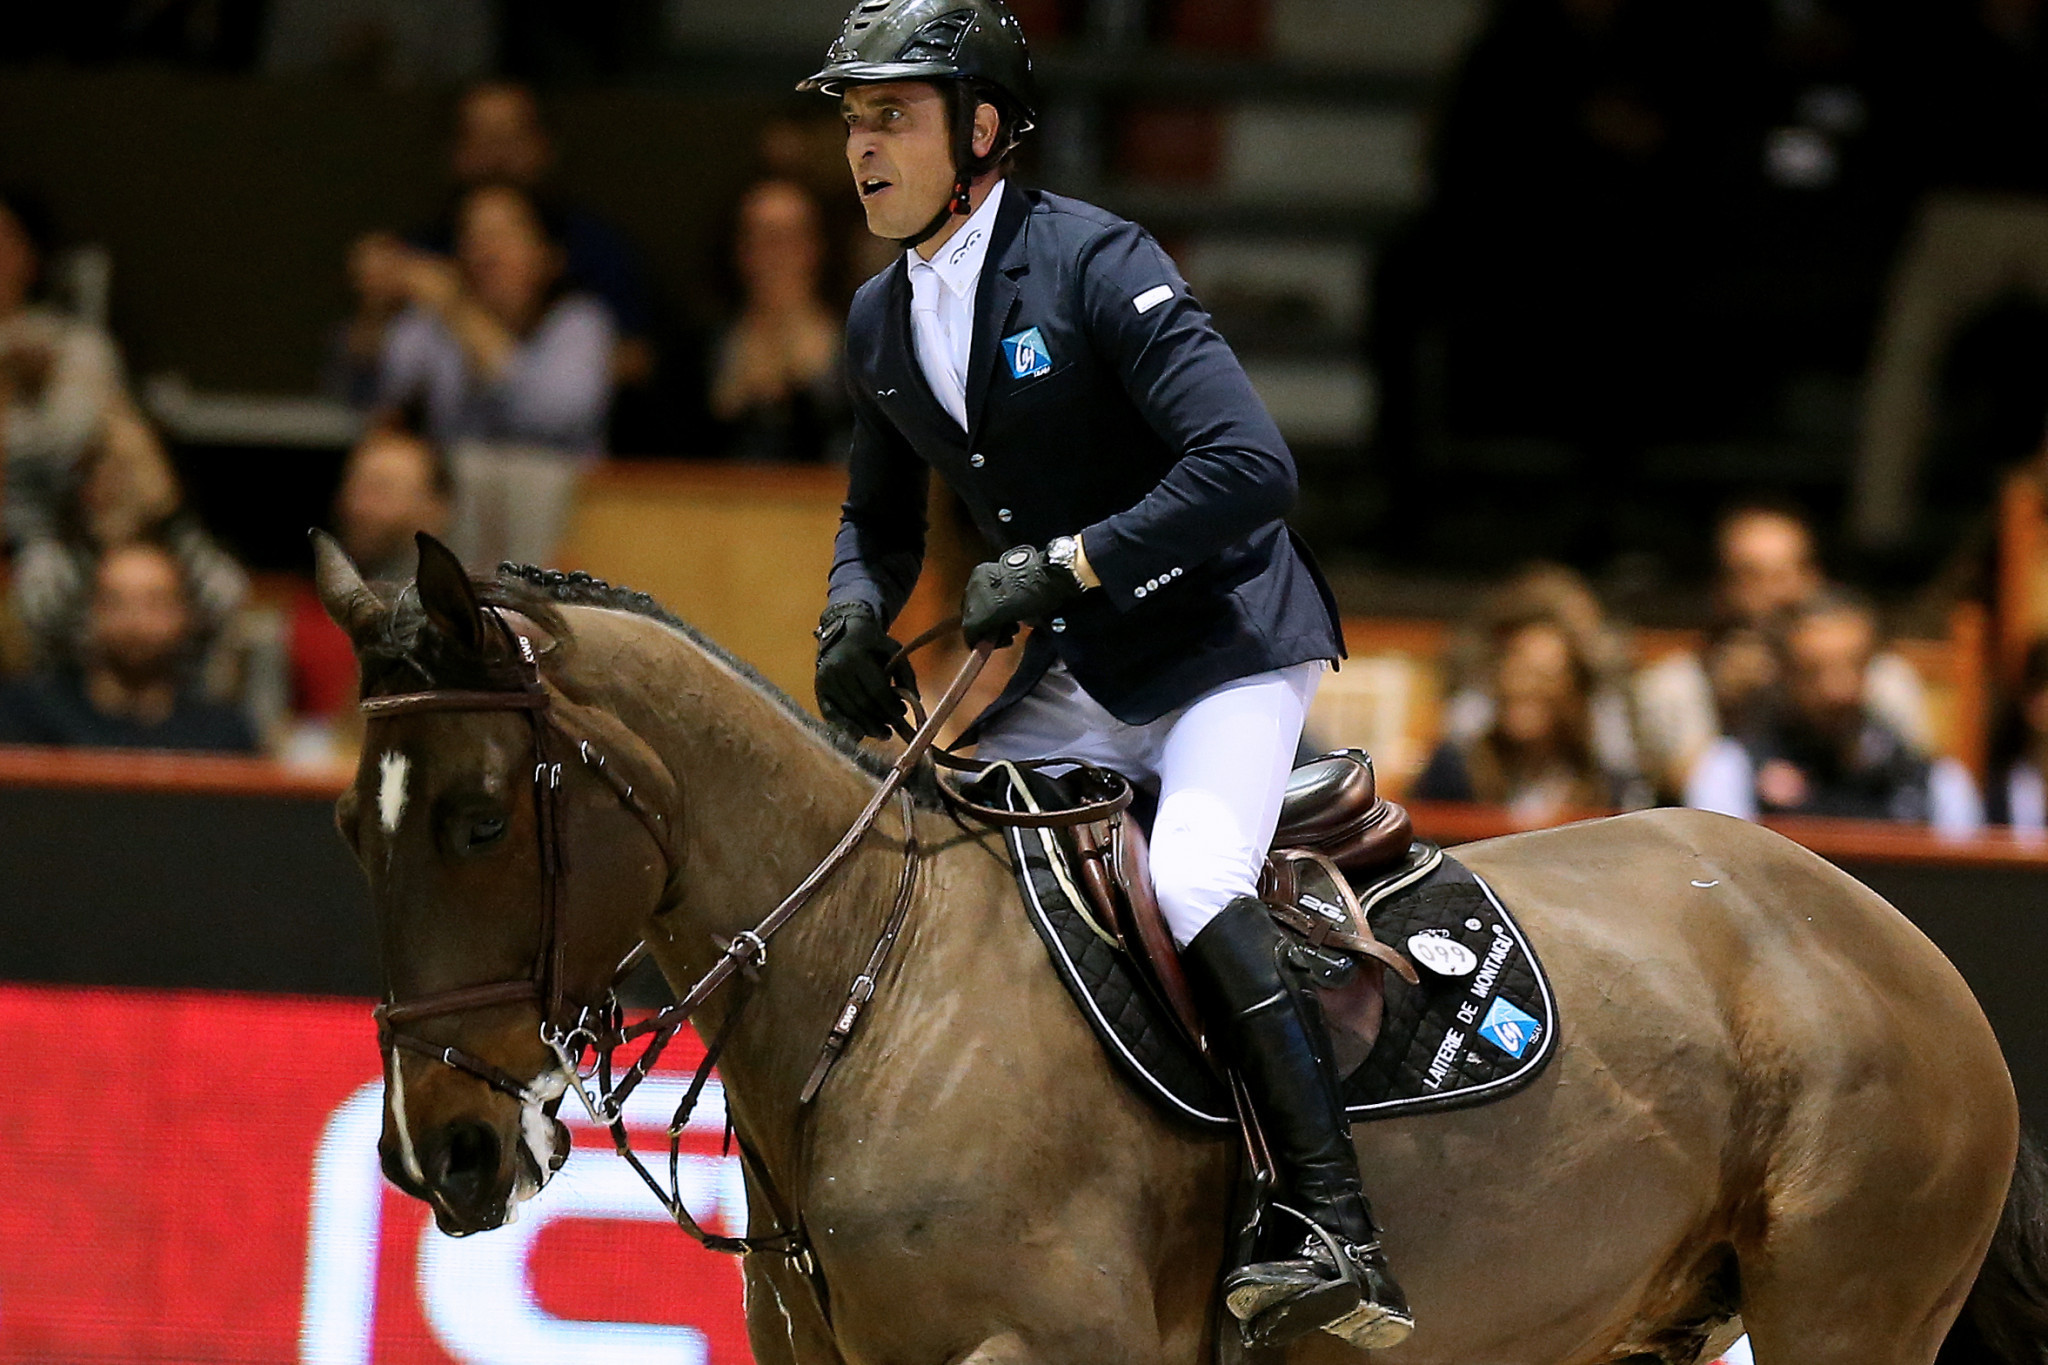 France's Epaillard beats Maher in thrilling jump-off at Global Champions Tour event